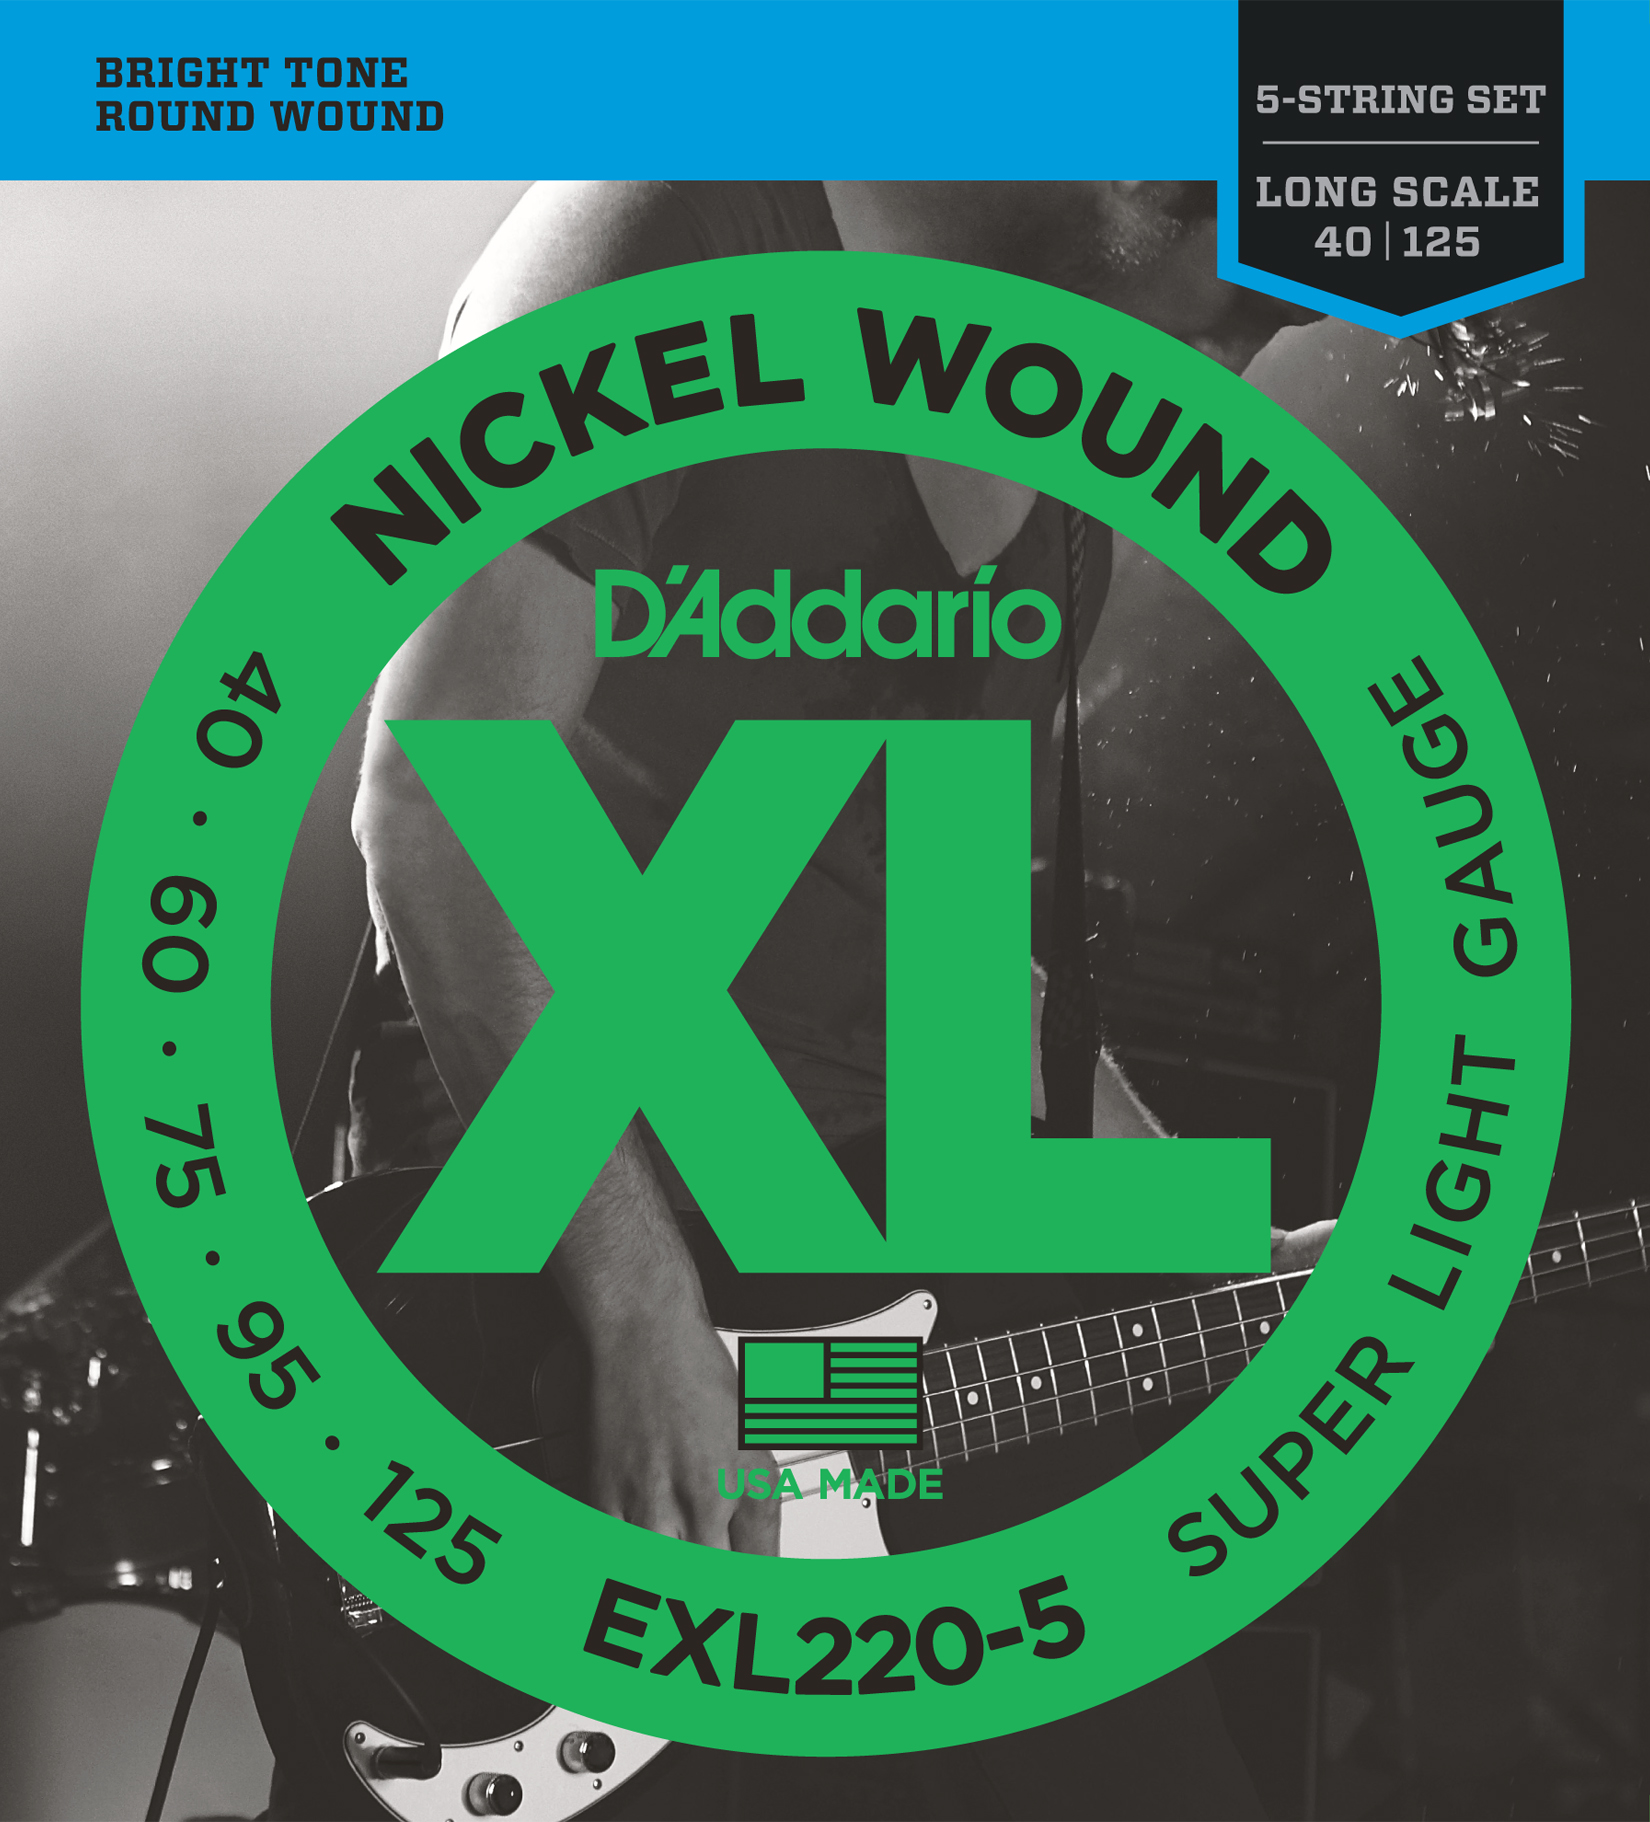 D'Addario EXL220-5 5-String Nickel Wound Bass Guitar Strings, Super Light, 40-12...